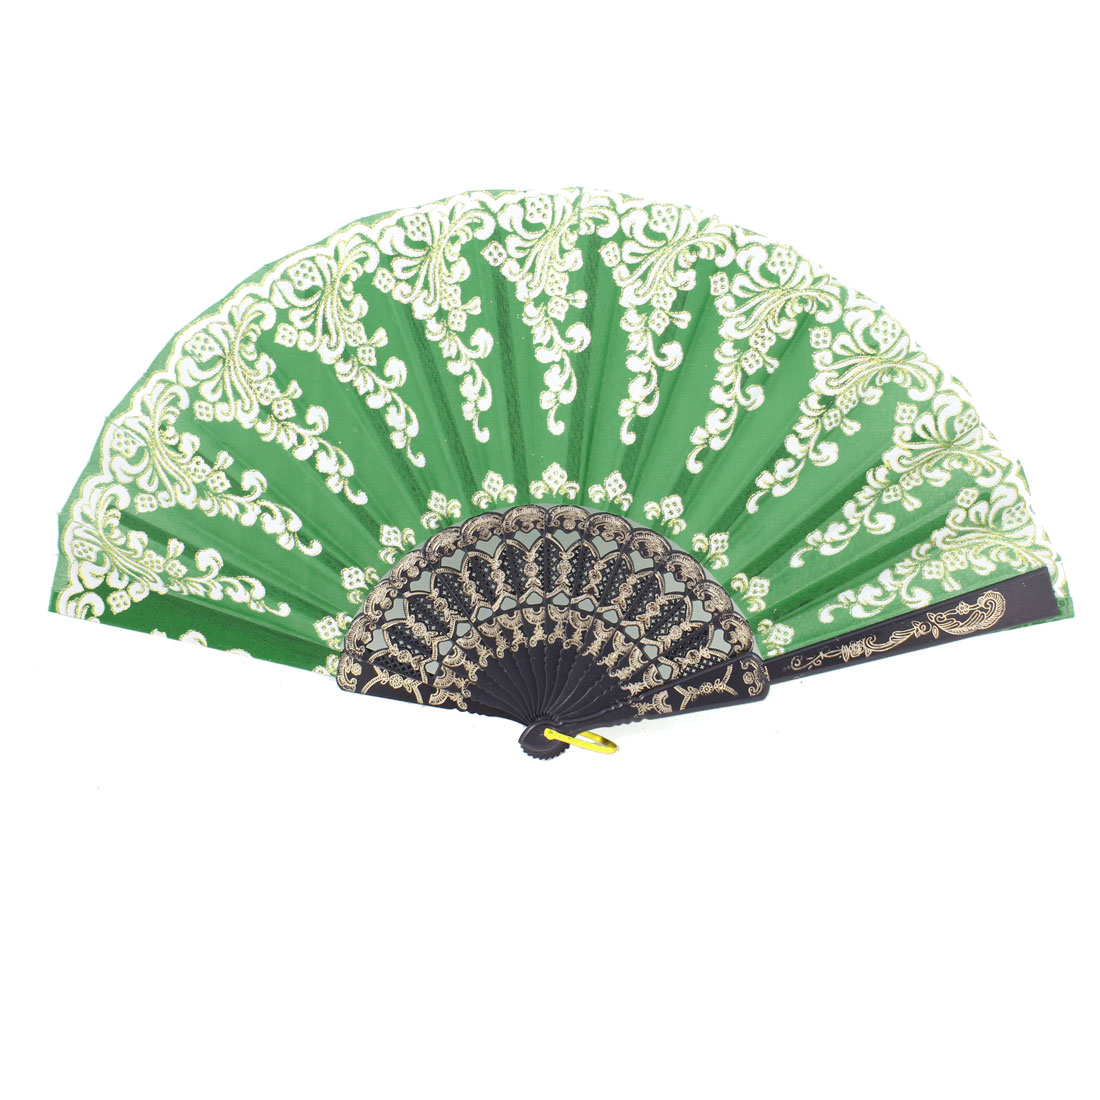 Nylon Hollow Out Handle Plastic Green Folding Metal Ring Hand Fan